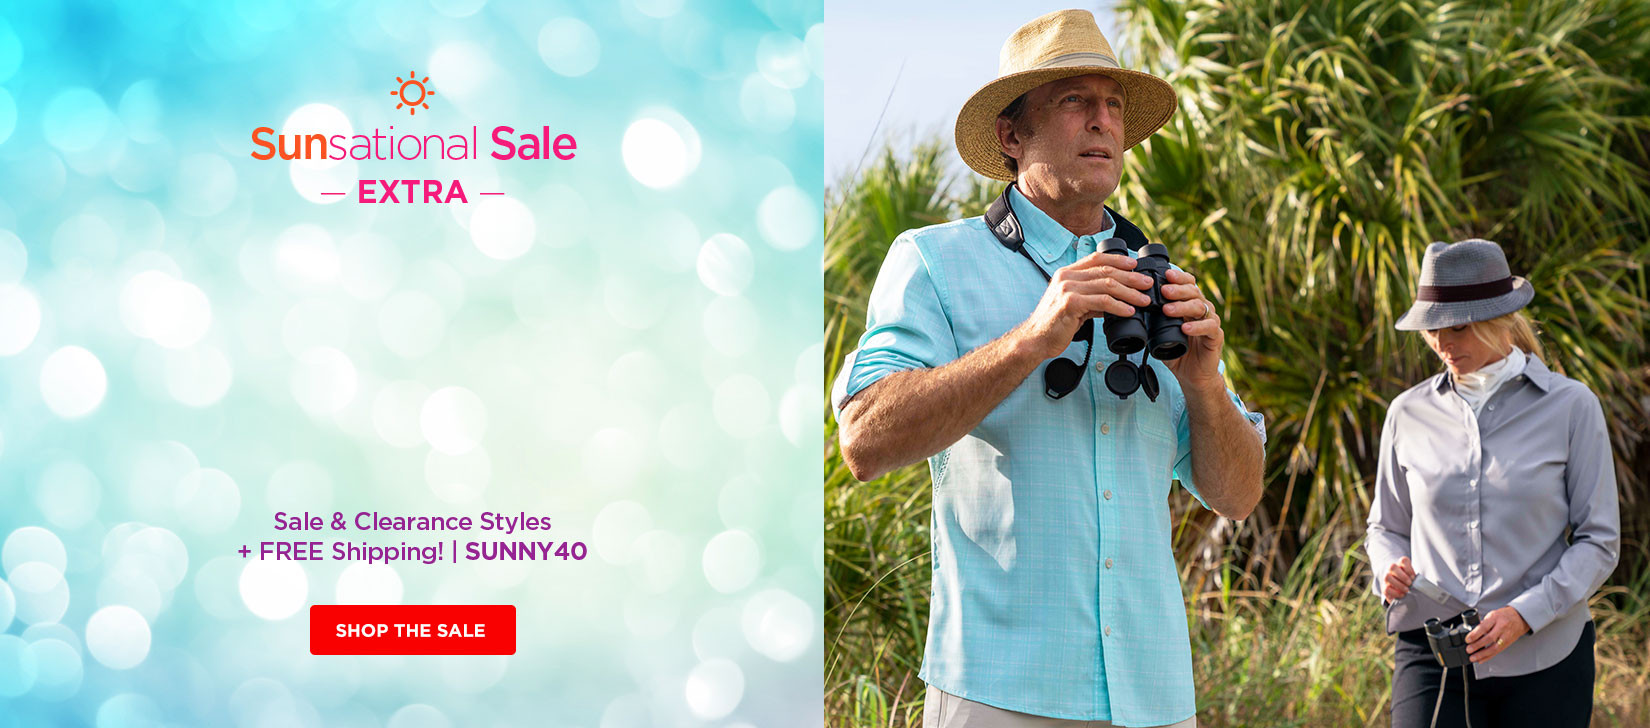 Sunsational Sale Extra 40% off - Sale & Clearance Styles + Free Shipping! | SUNNY40